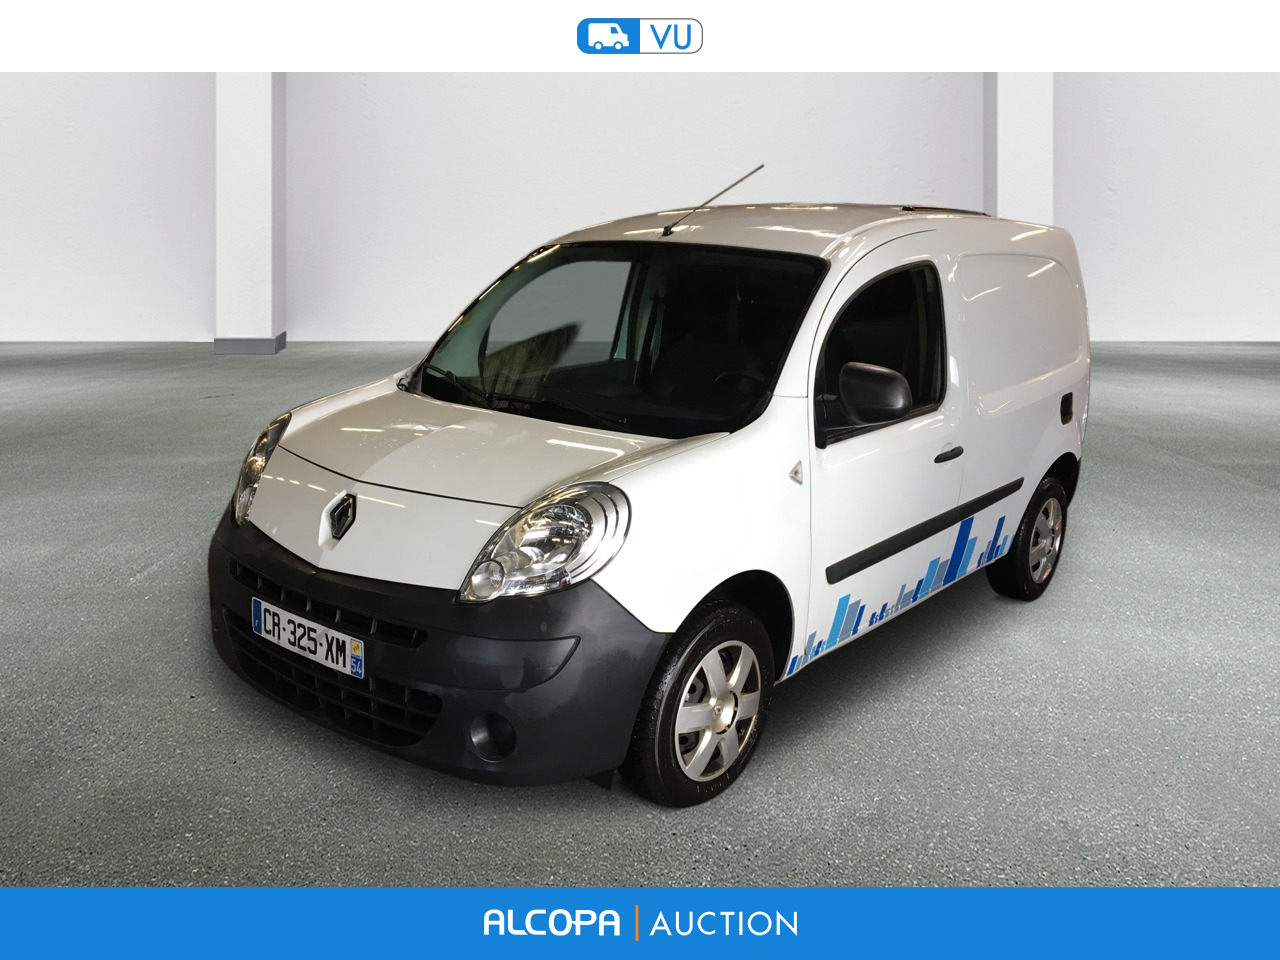 renault kangoo kangoo express confort dci75 alcopa auction. Black Bedroom Furniture Sets. Home Design Ideas